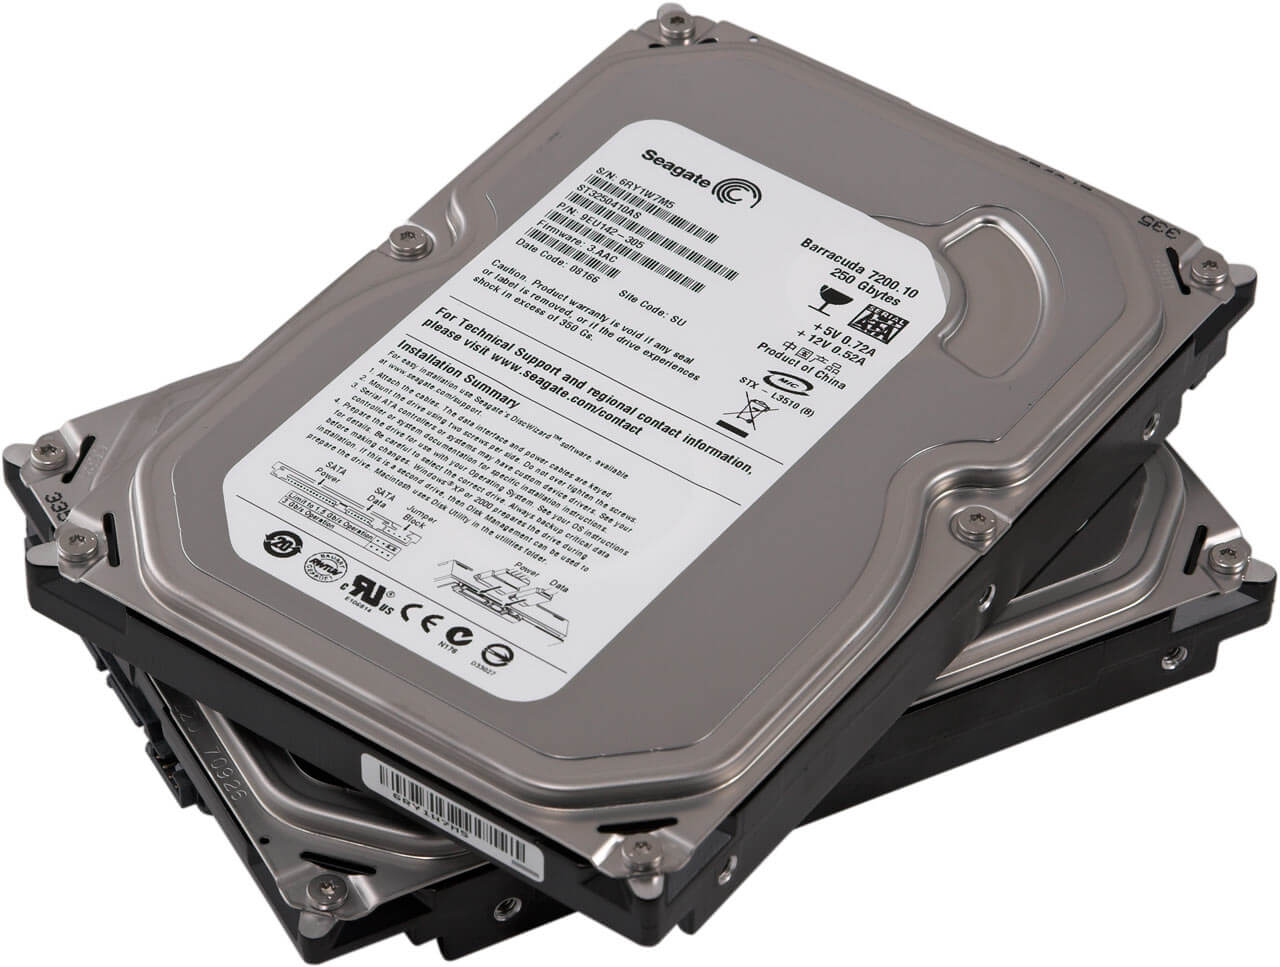 Seagate_Barracuda_250GB_-_7200rpm_-_16Mb_caches_-_SATAII-hinh3